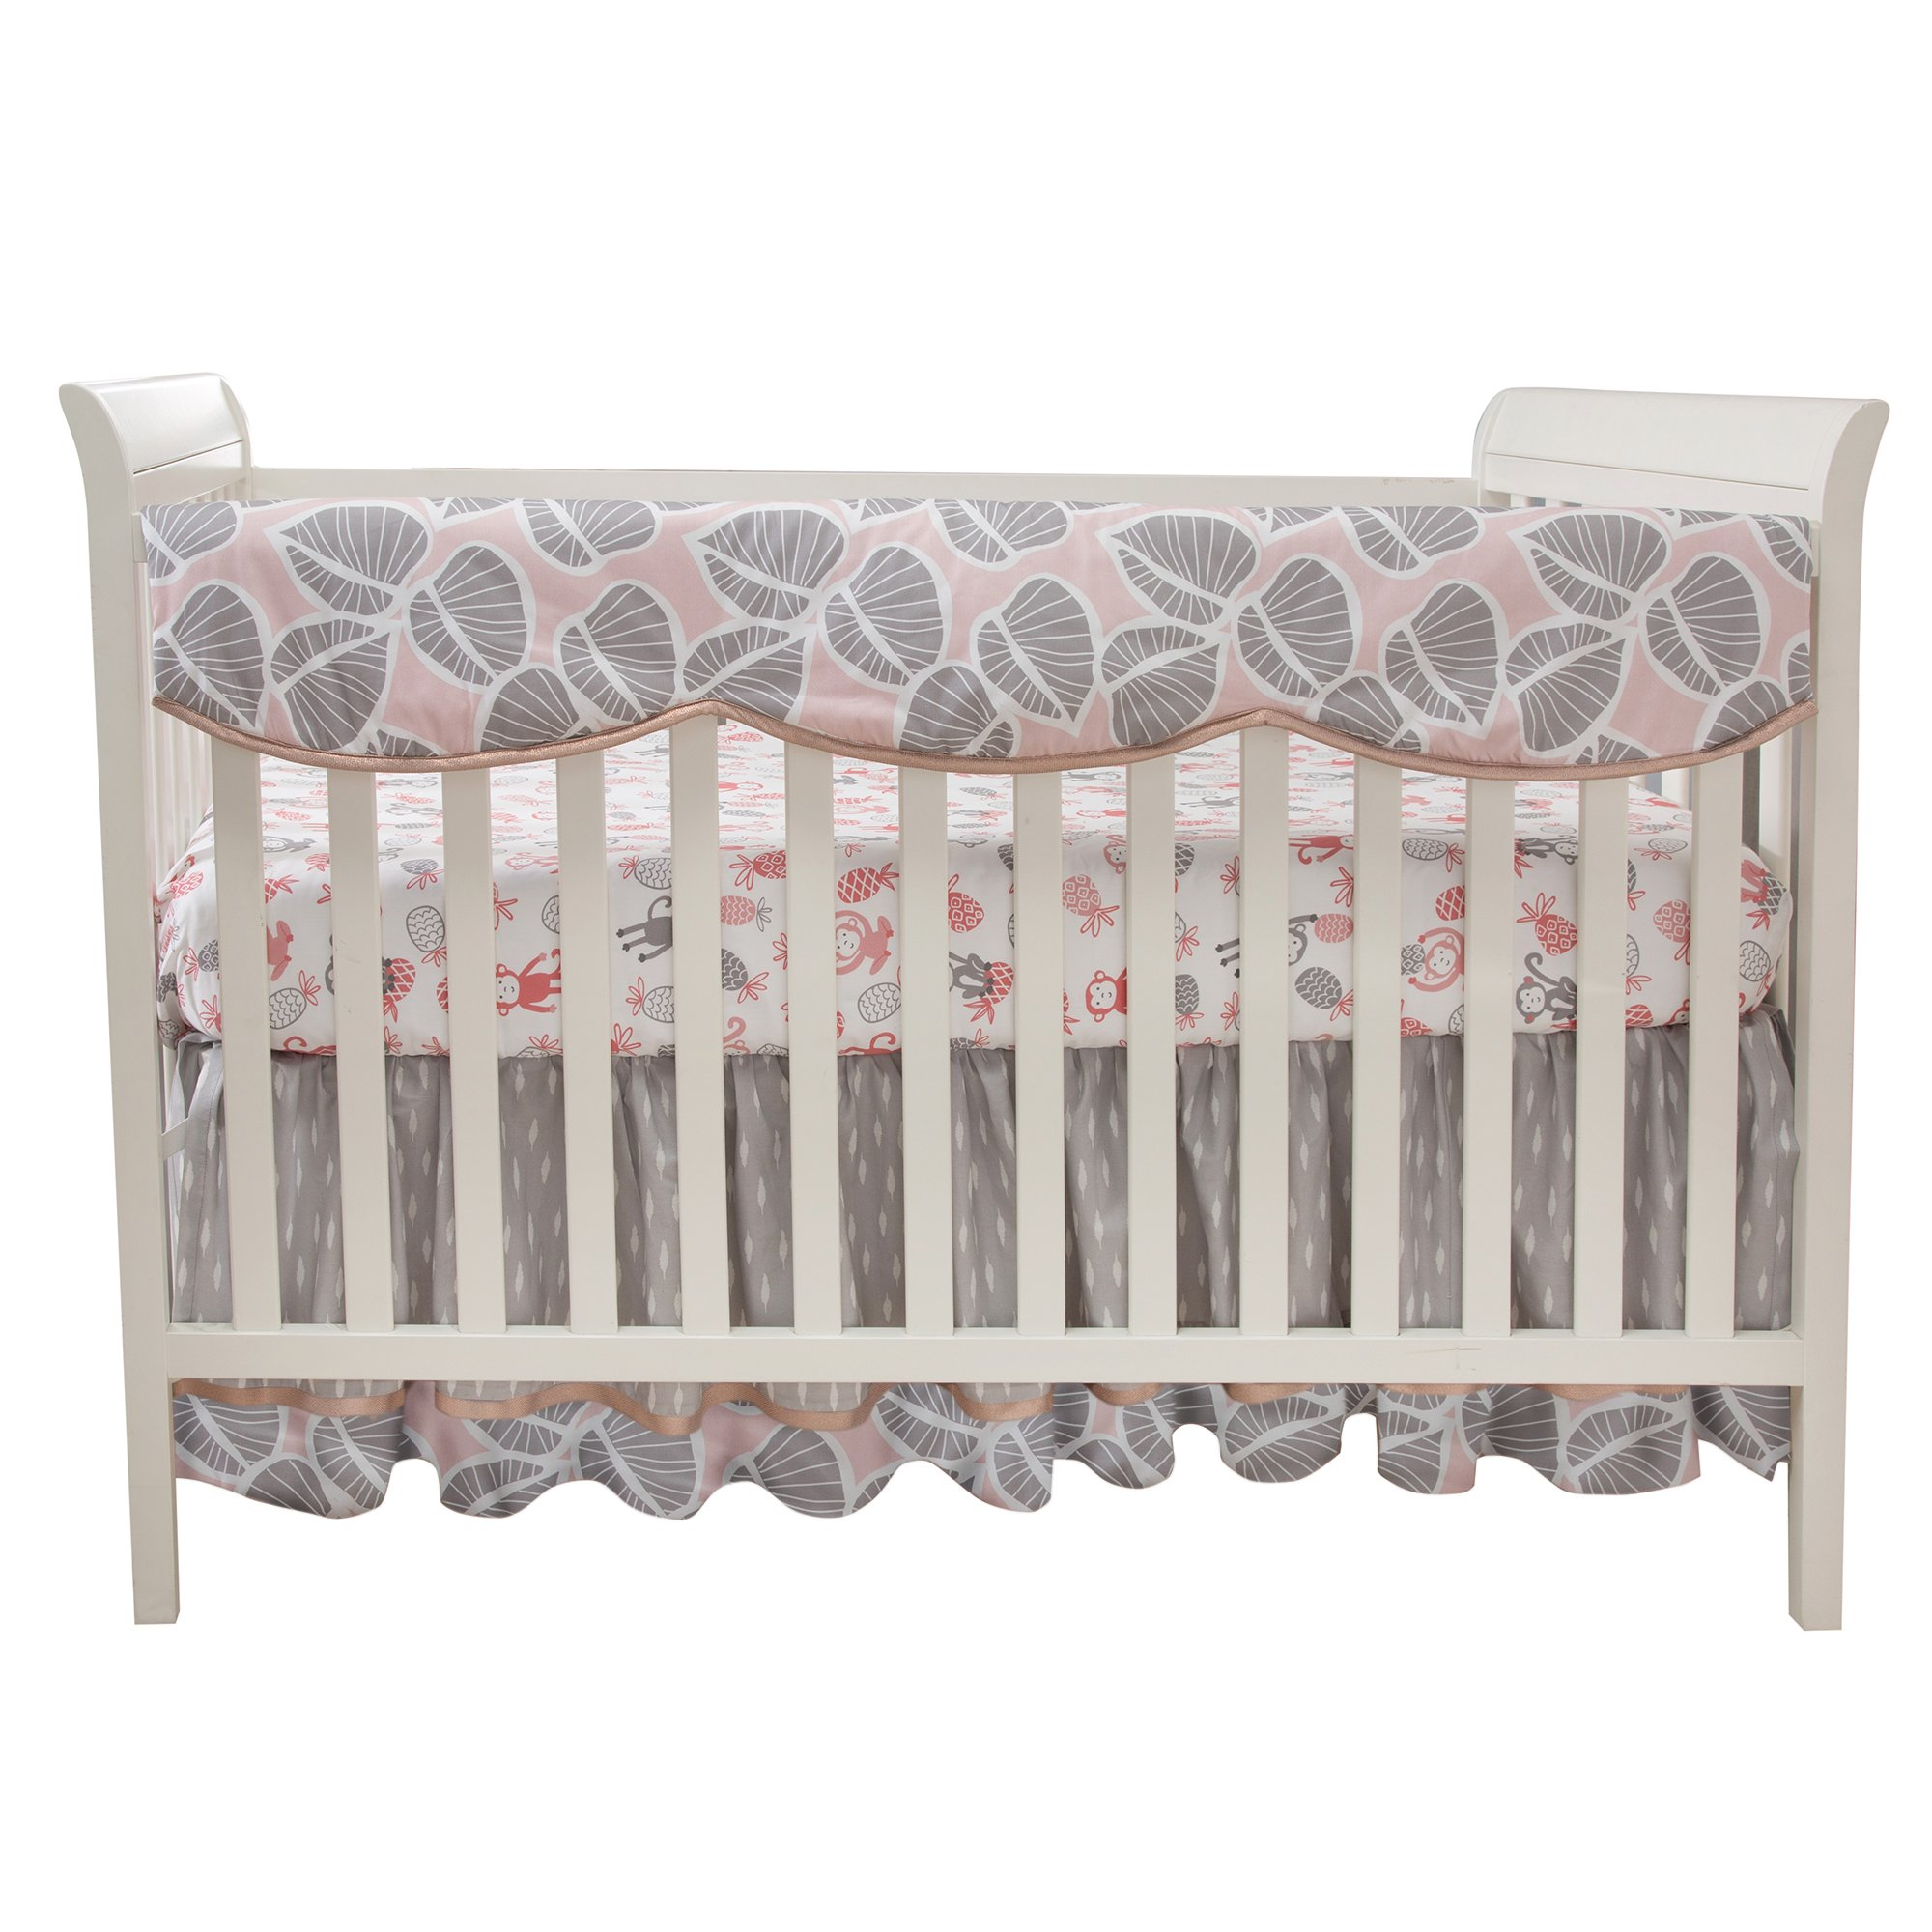 Lambs & Ivy Calypso Crib Rail Cover - Pink, Gray, Gold, White, Jungle, Outdoors